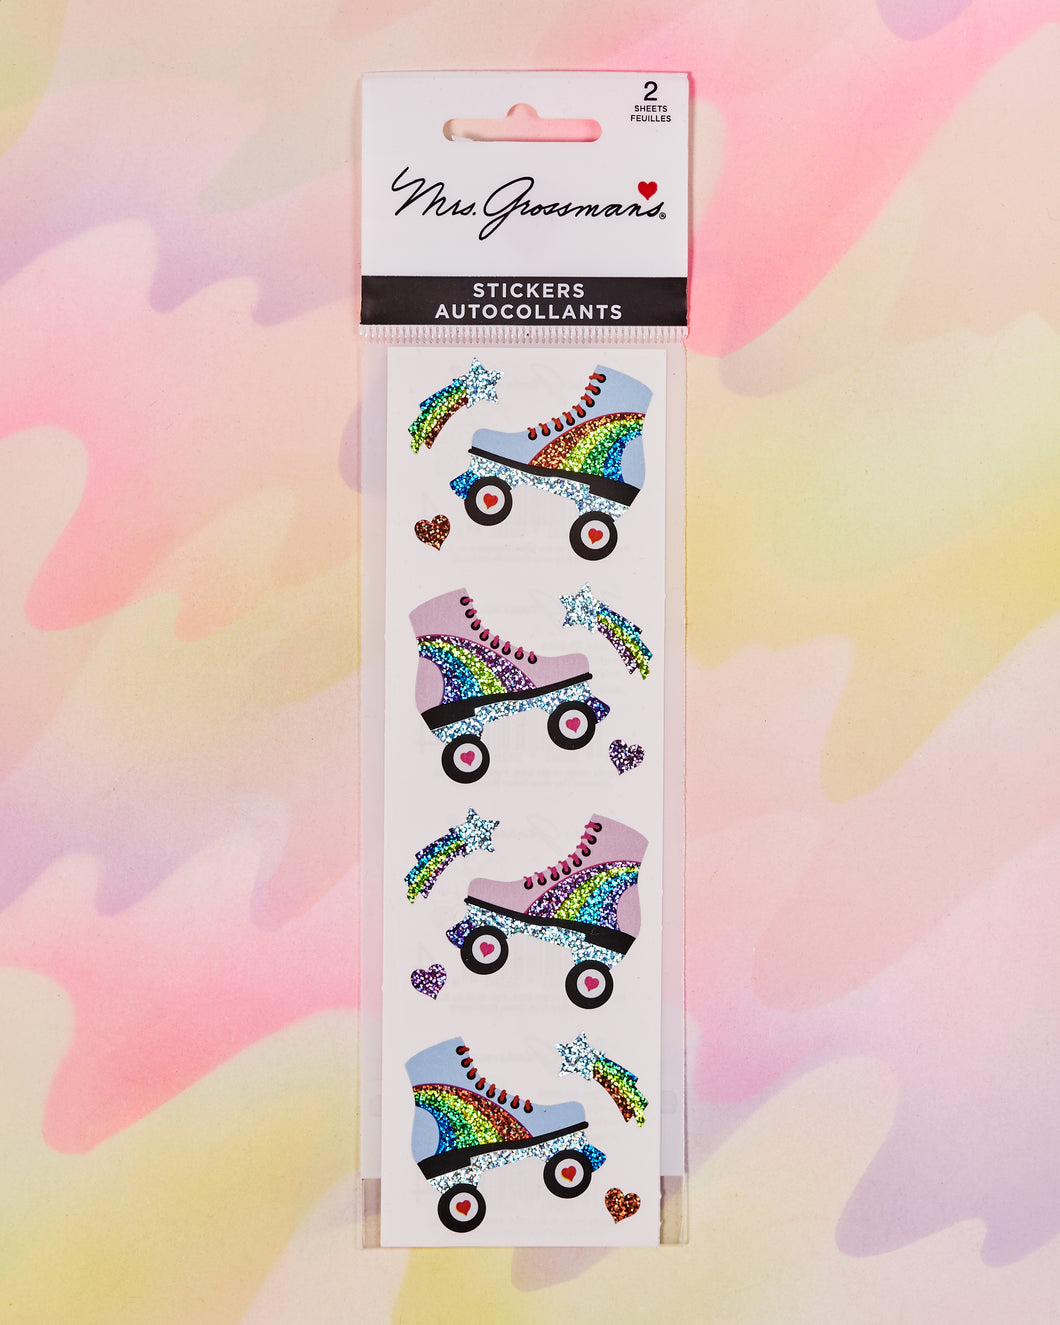 Roller Skate Stickers